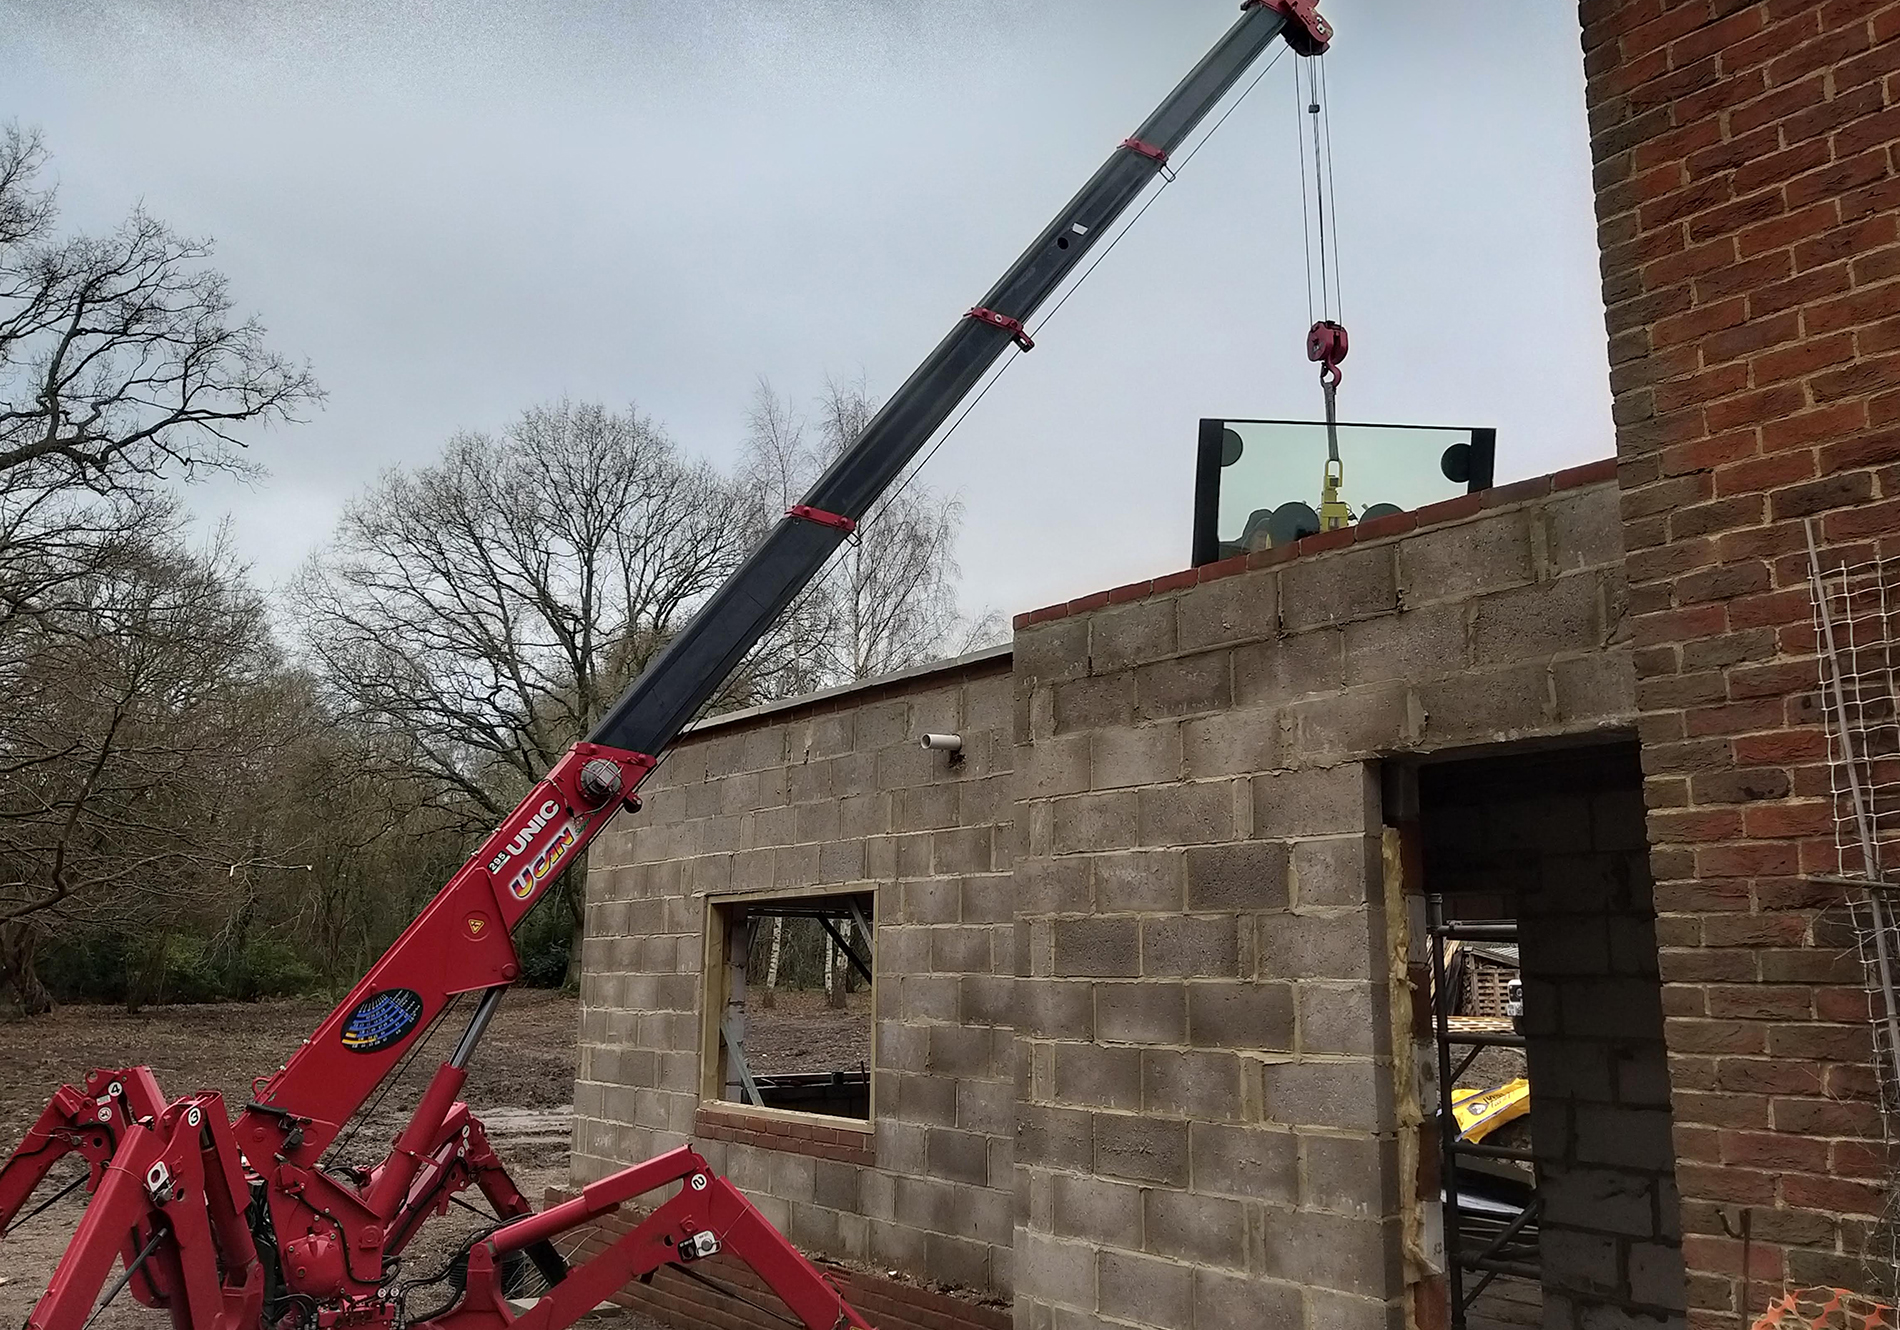 spider crane on site at East Horlsey